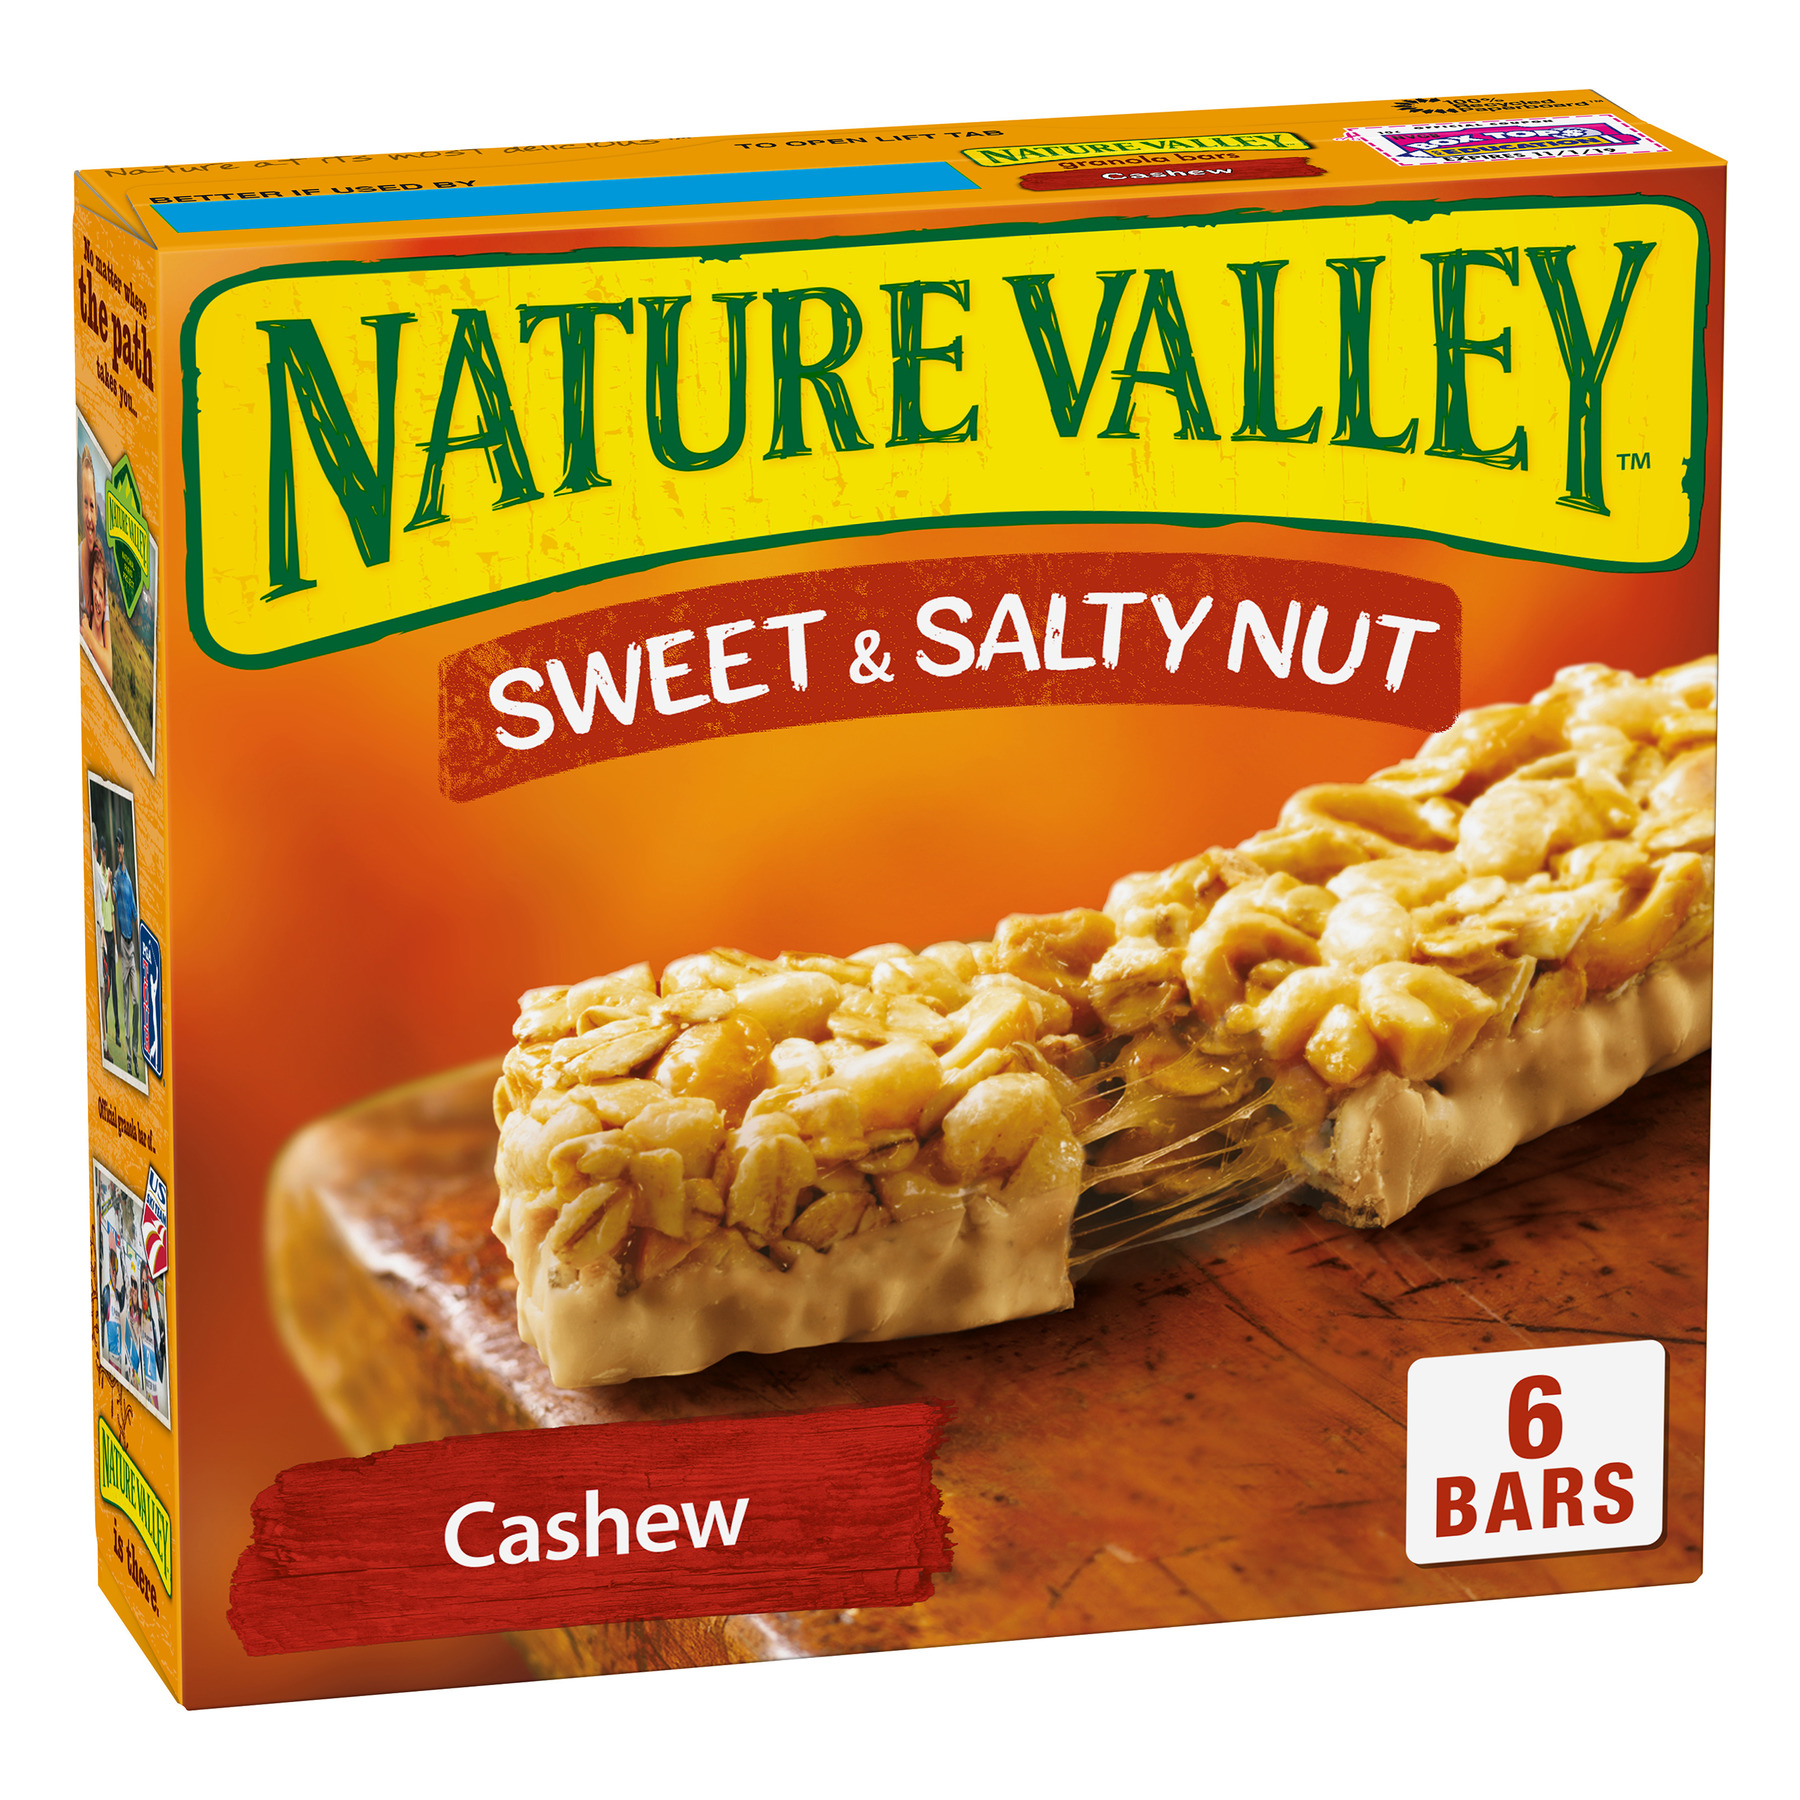 Nature Valley Sweet & Salty Nut Chewy Granola Bars, Cashew, 6 Ct, 7.4 Oz